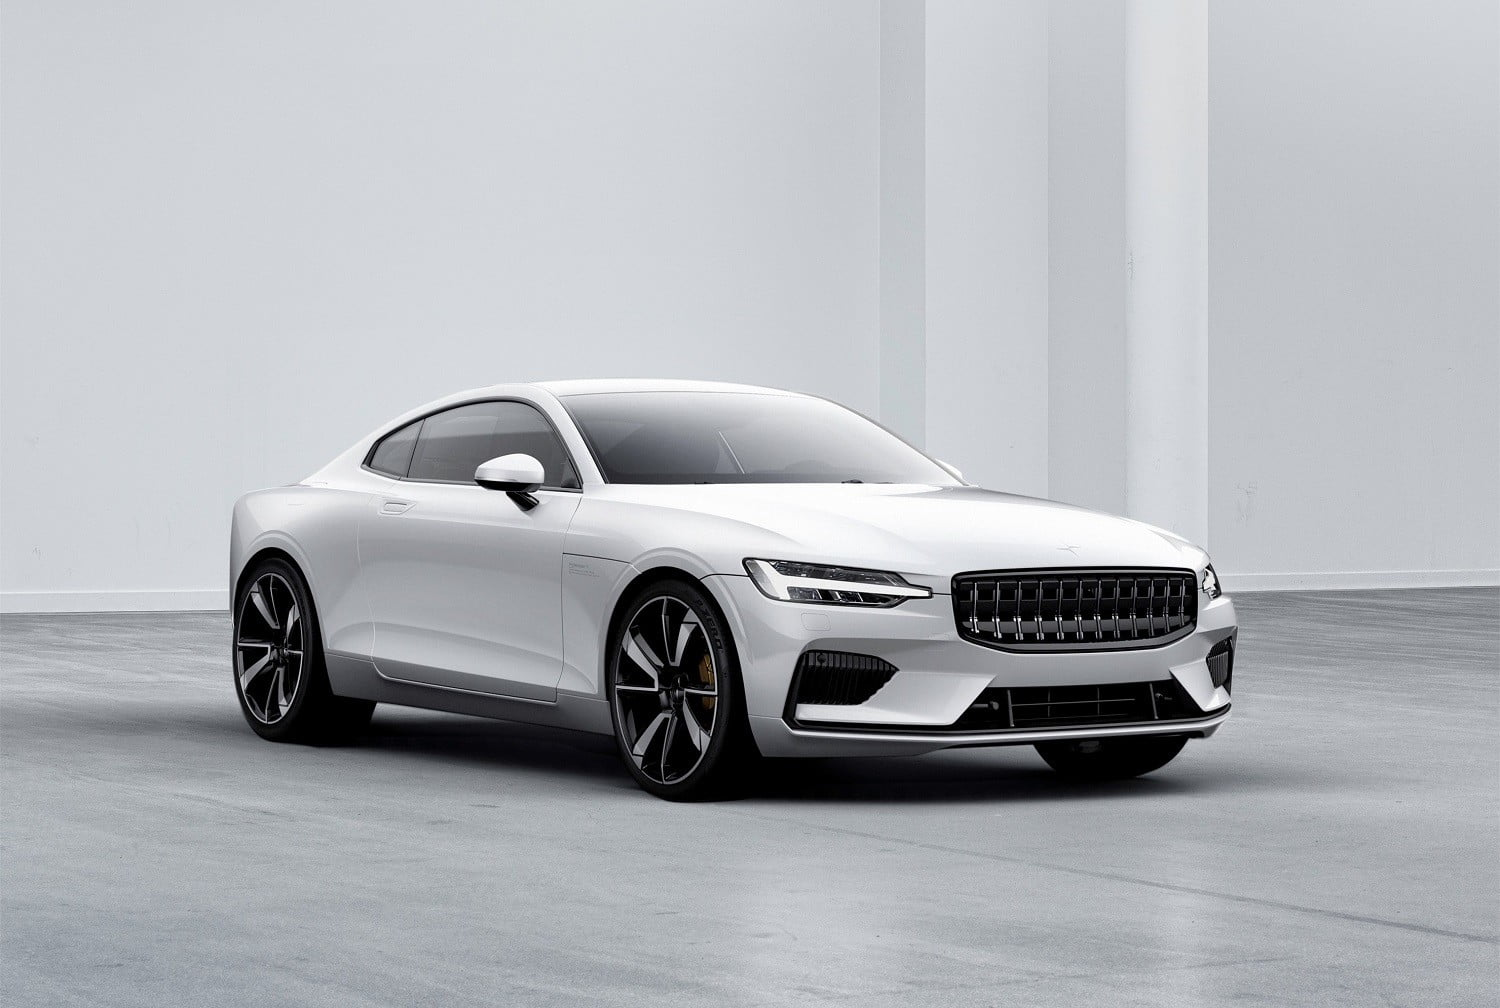 Volvo's Polestar performance brand is working on a Tesla Model 3 competitor